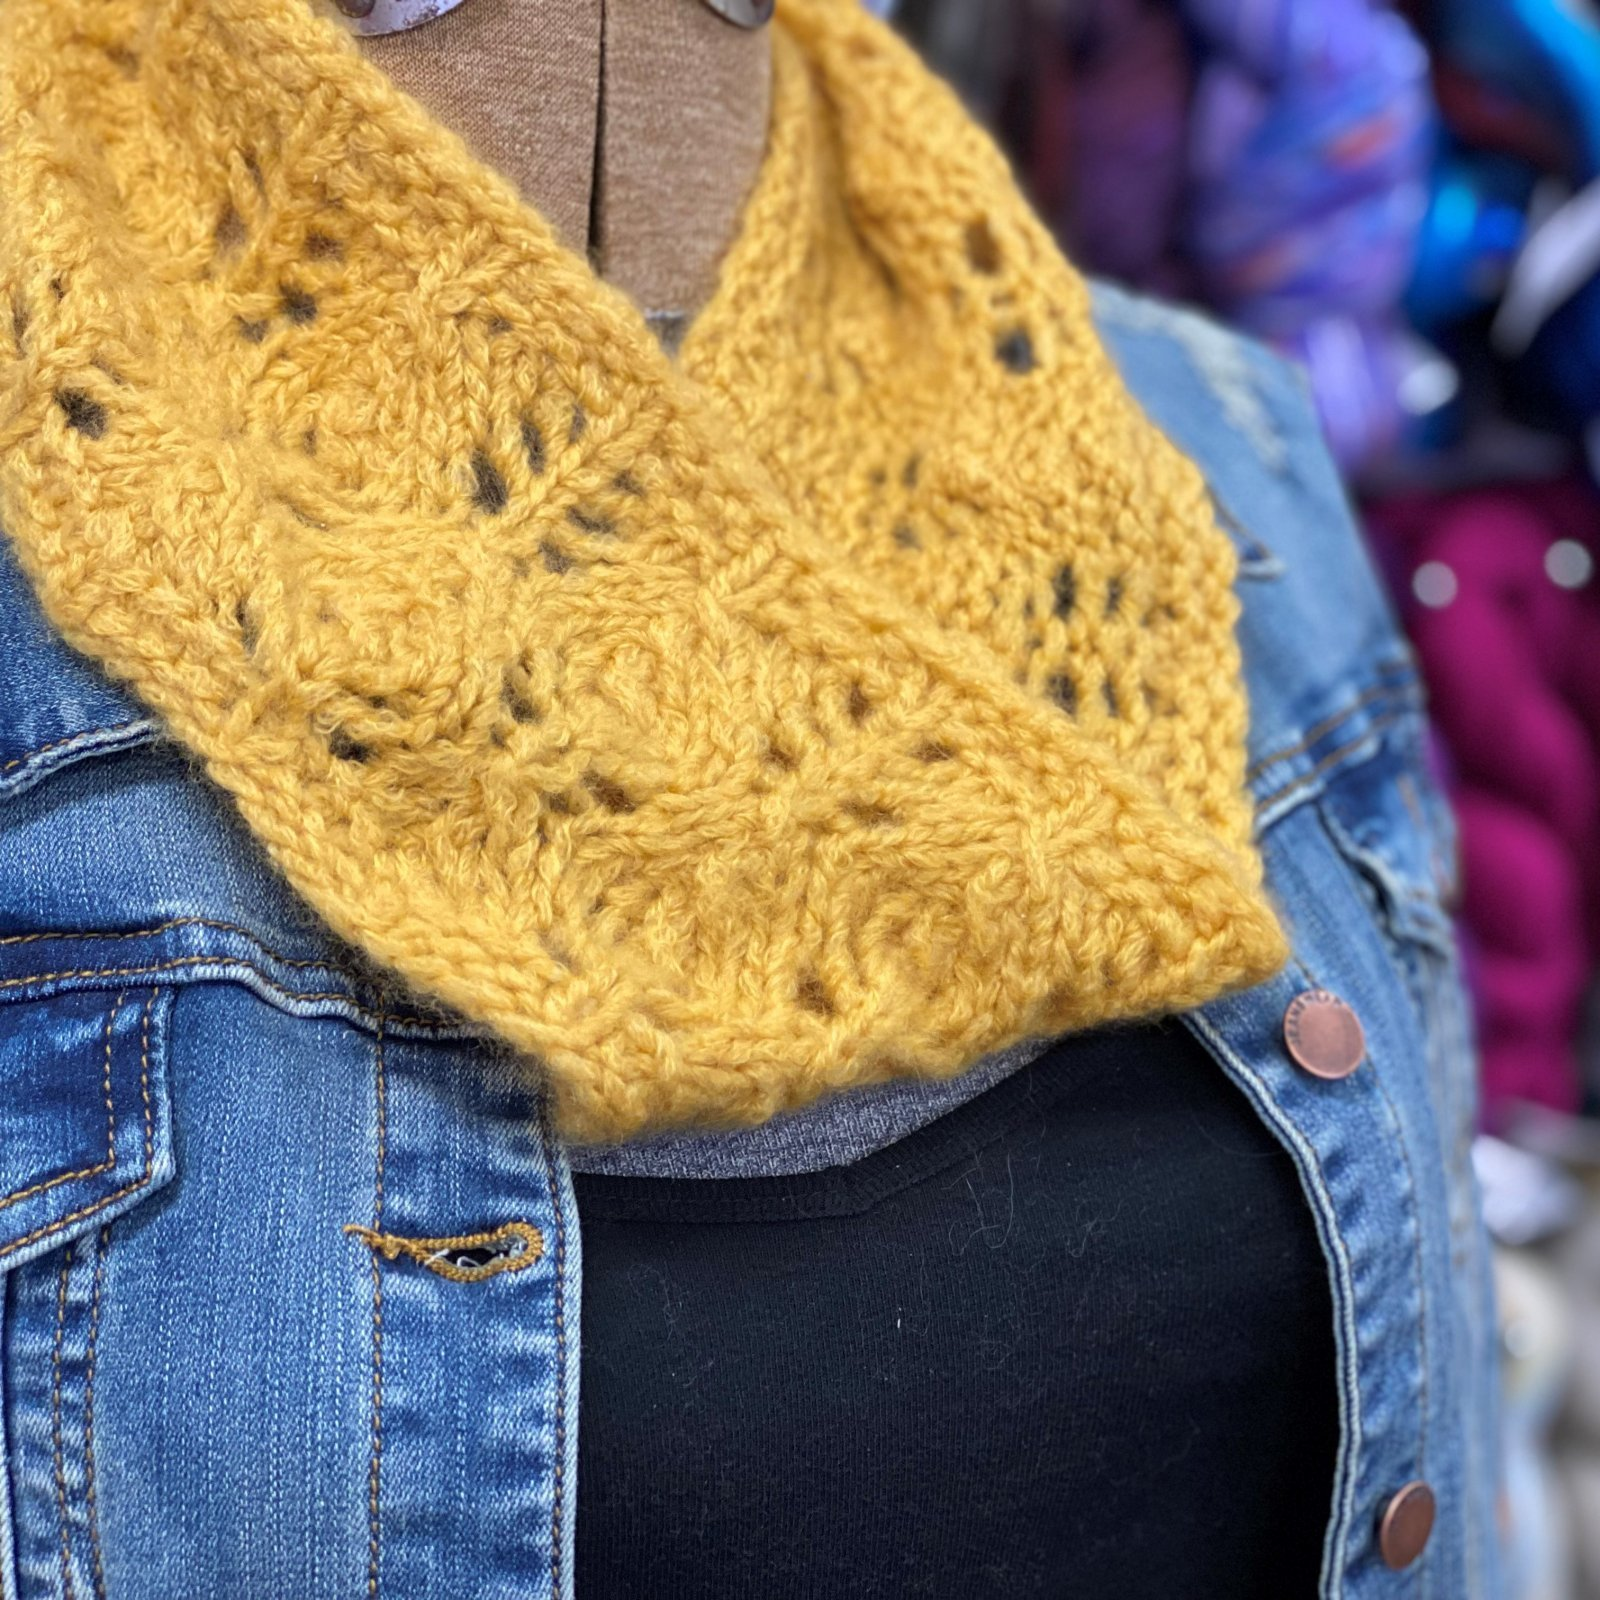 Paonne Cowl - On Demand Class